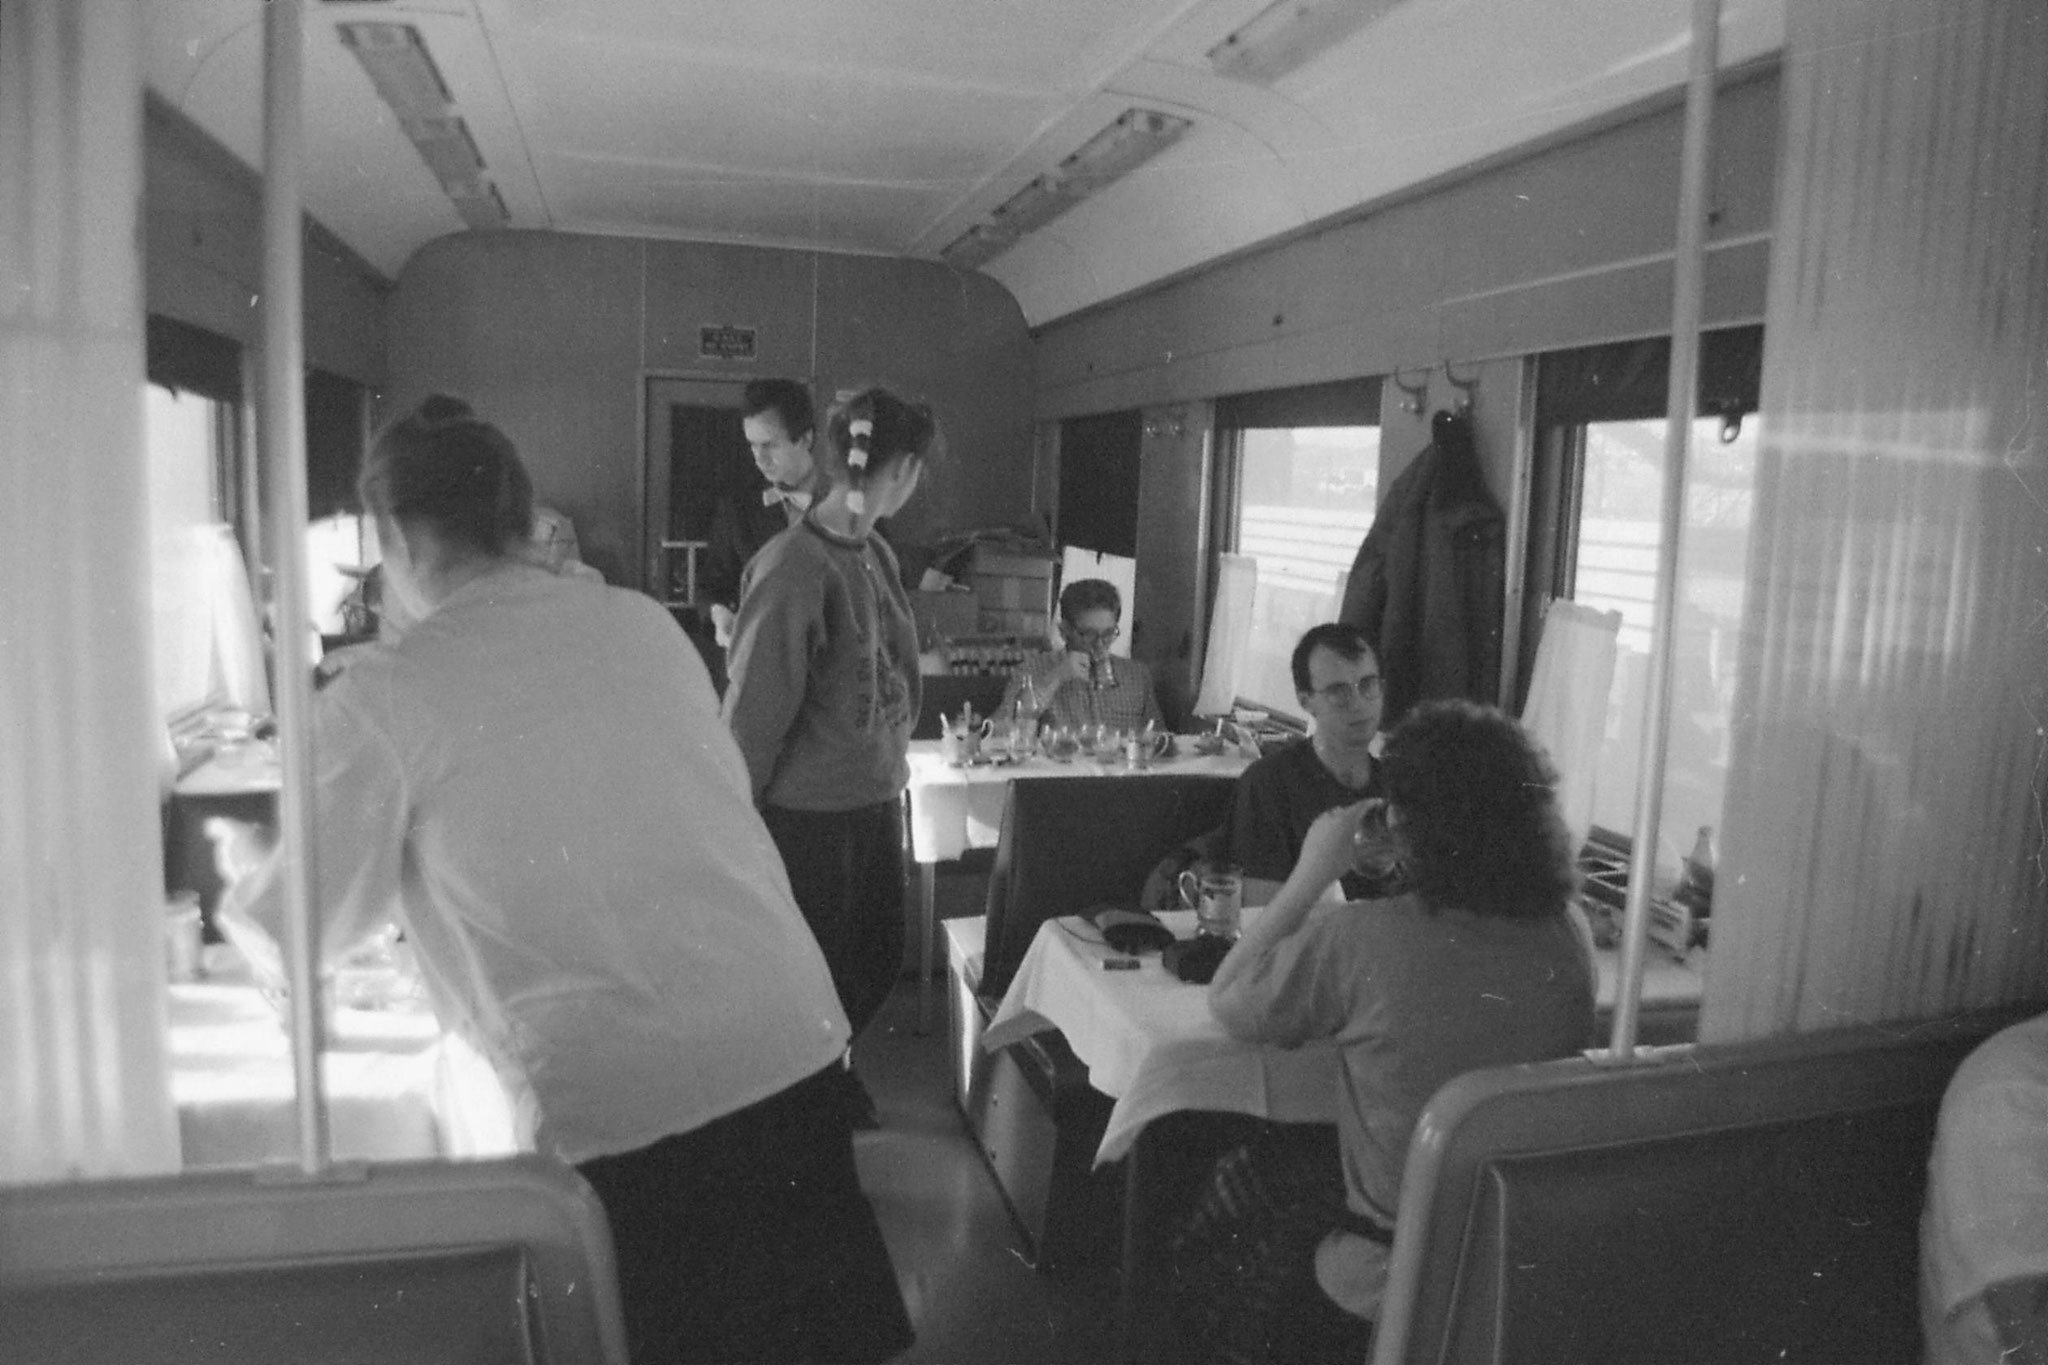 26/10/1988: 21: Russian dining car